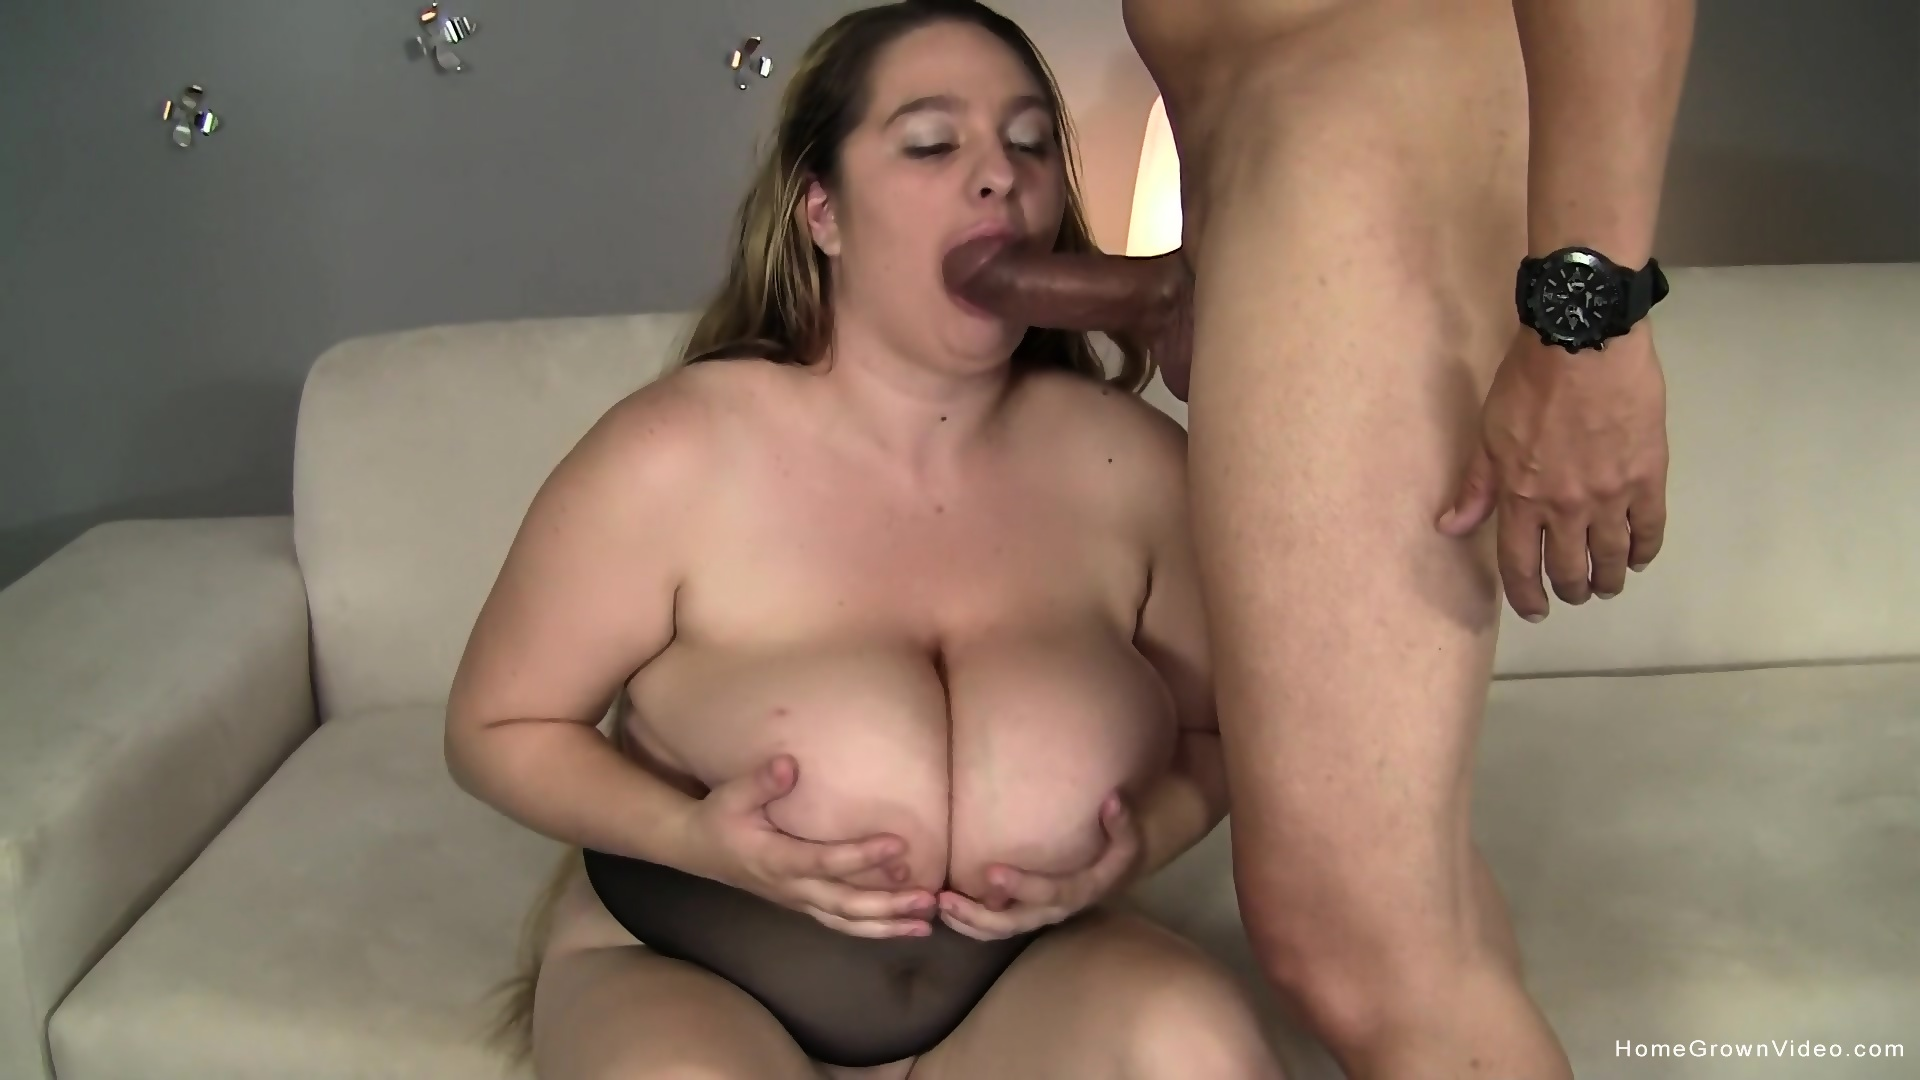 XXX Video Multiple orgasms with a vibrator